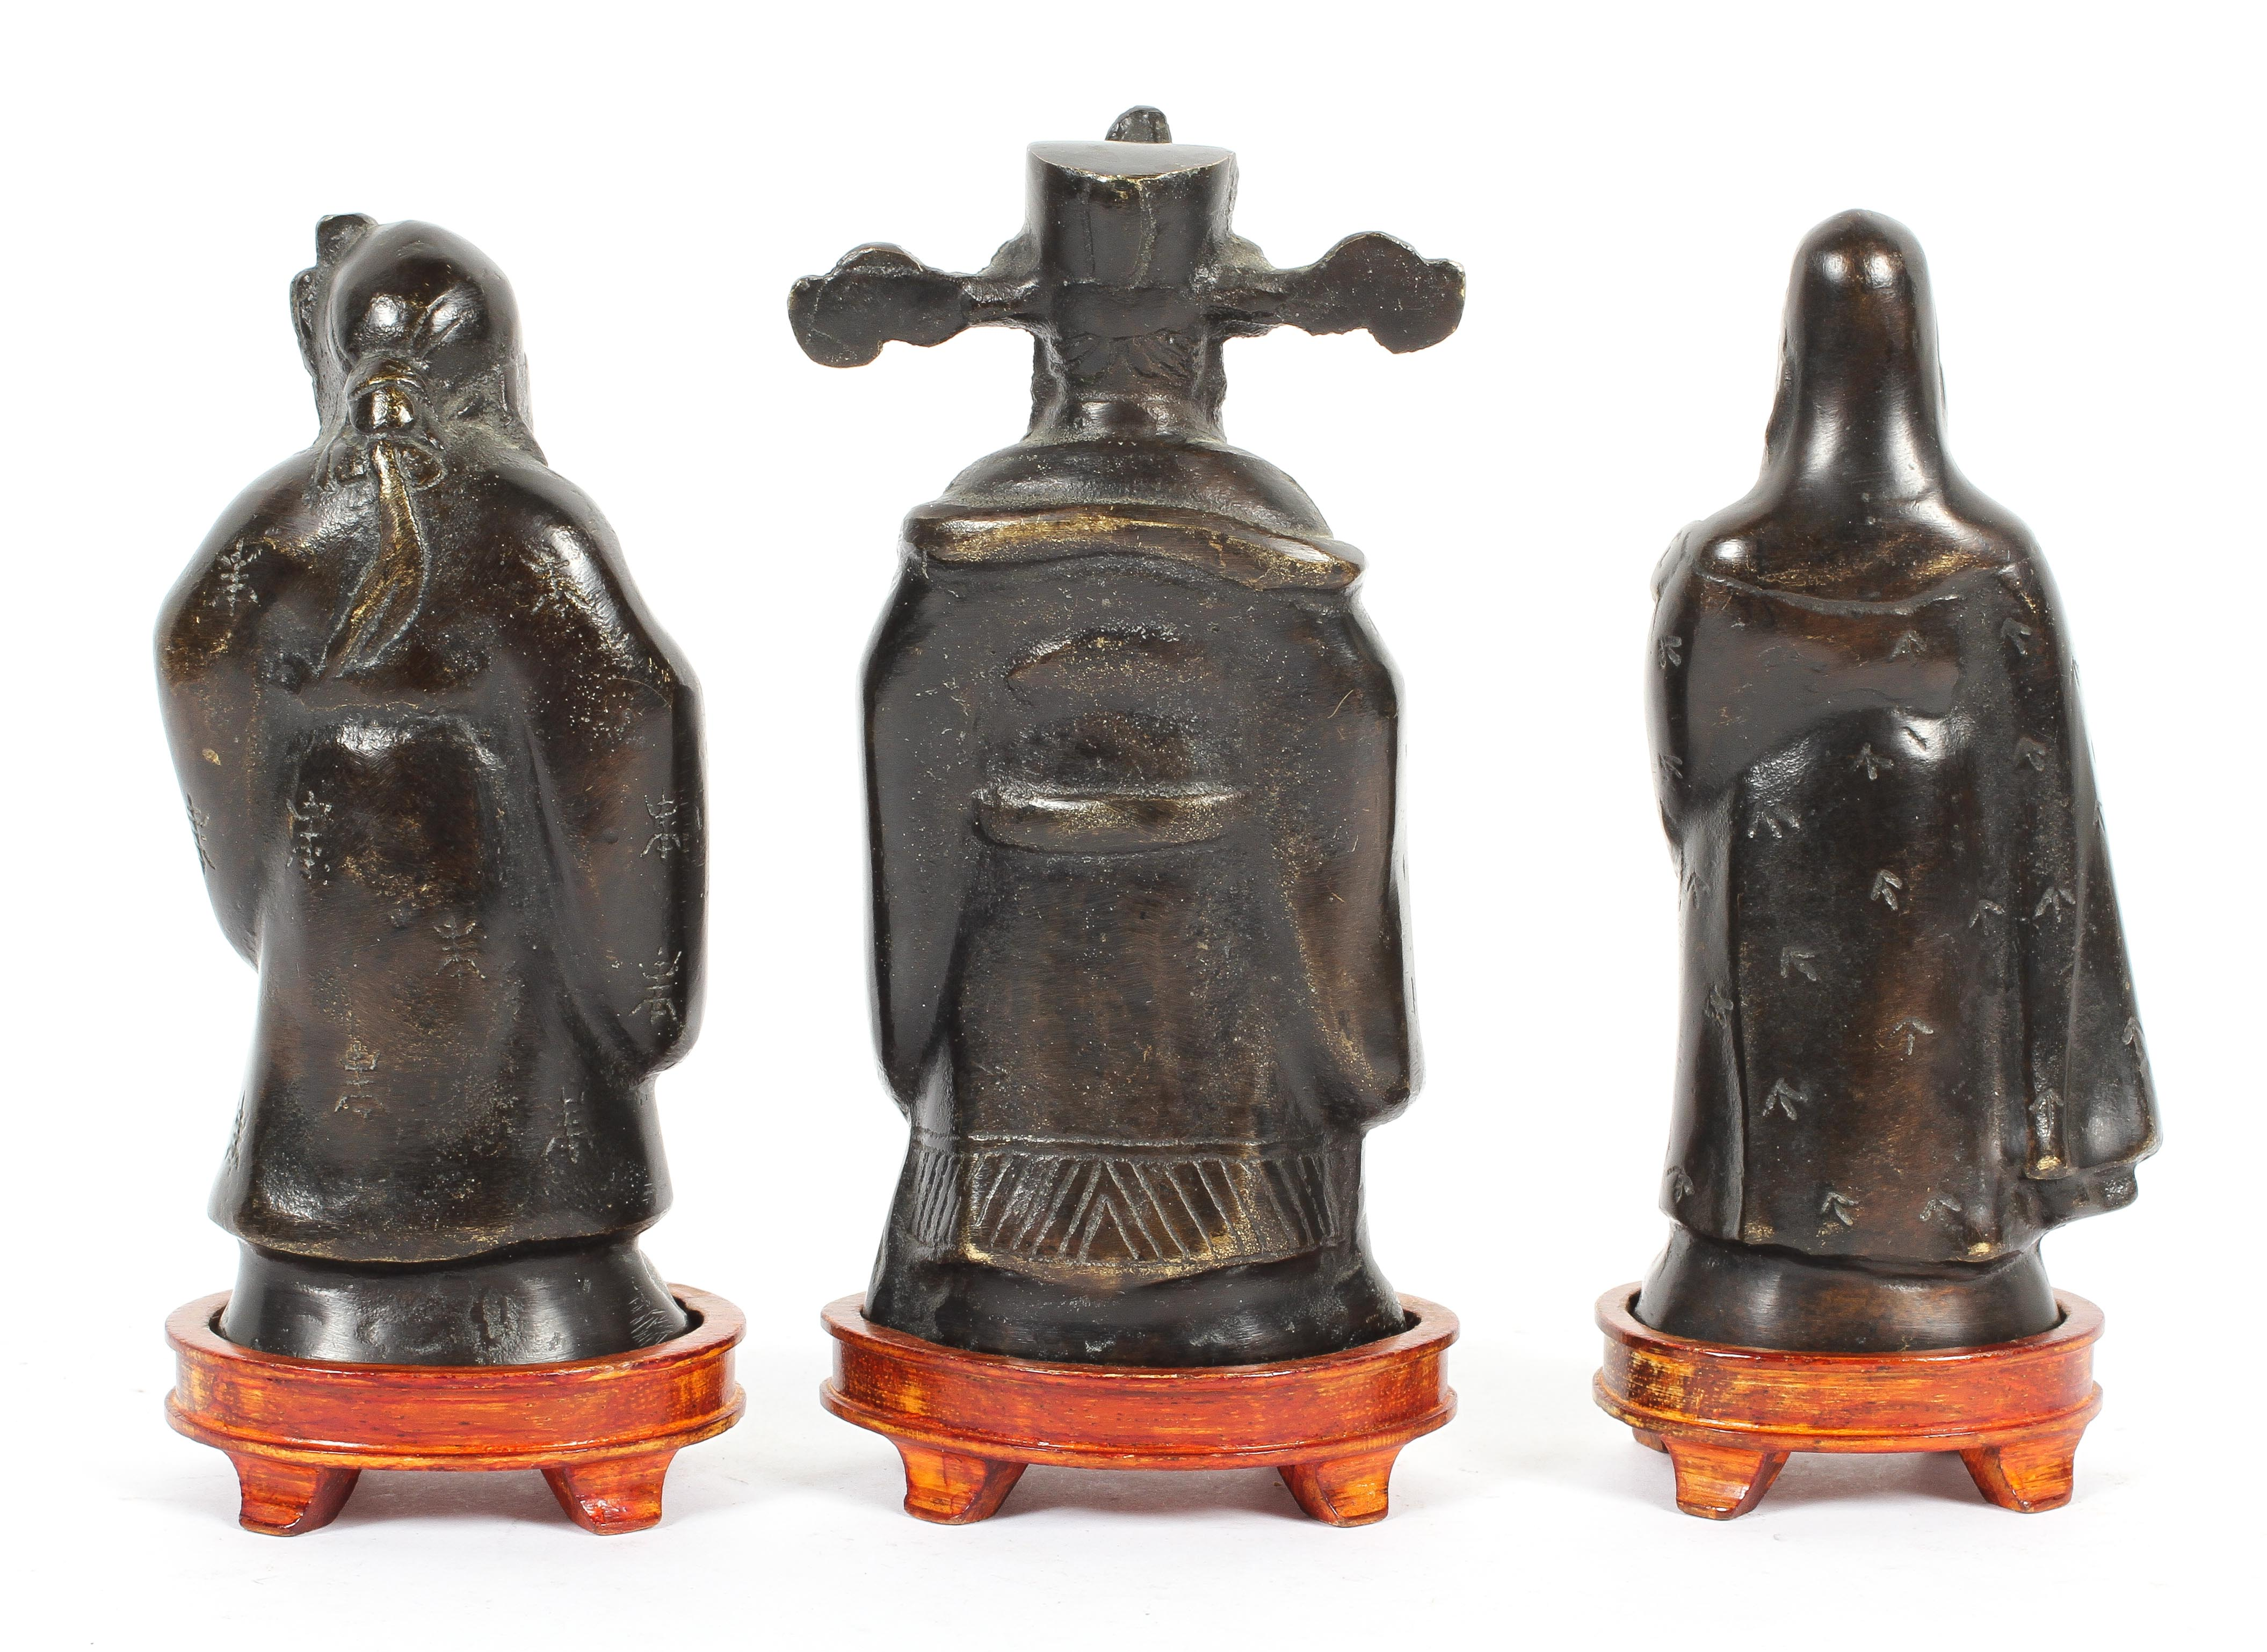 Three Chinese bronze figures of Immortals, on wooden stands, 20th century, - Image 2 of 2